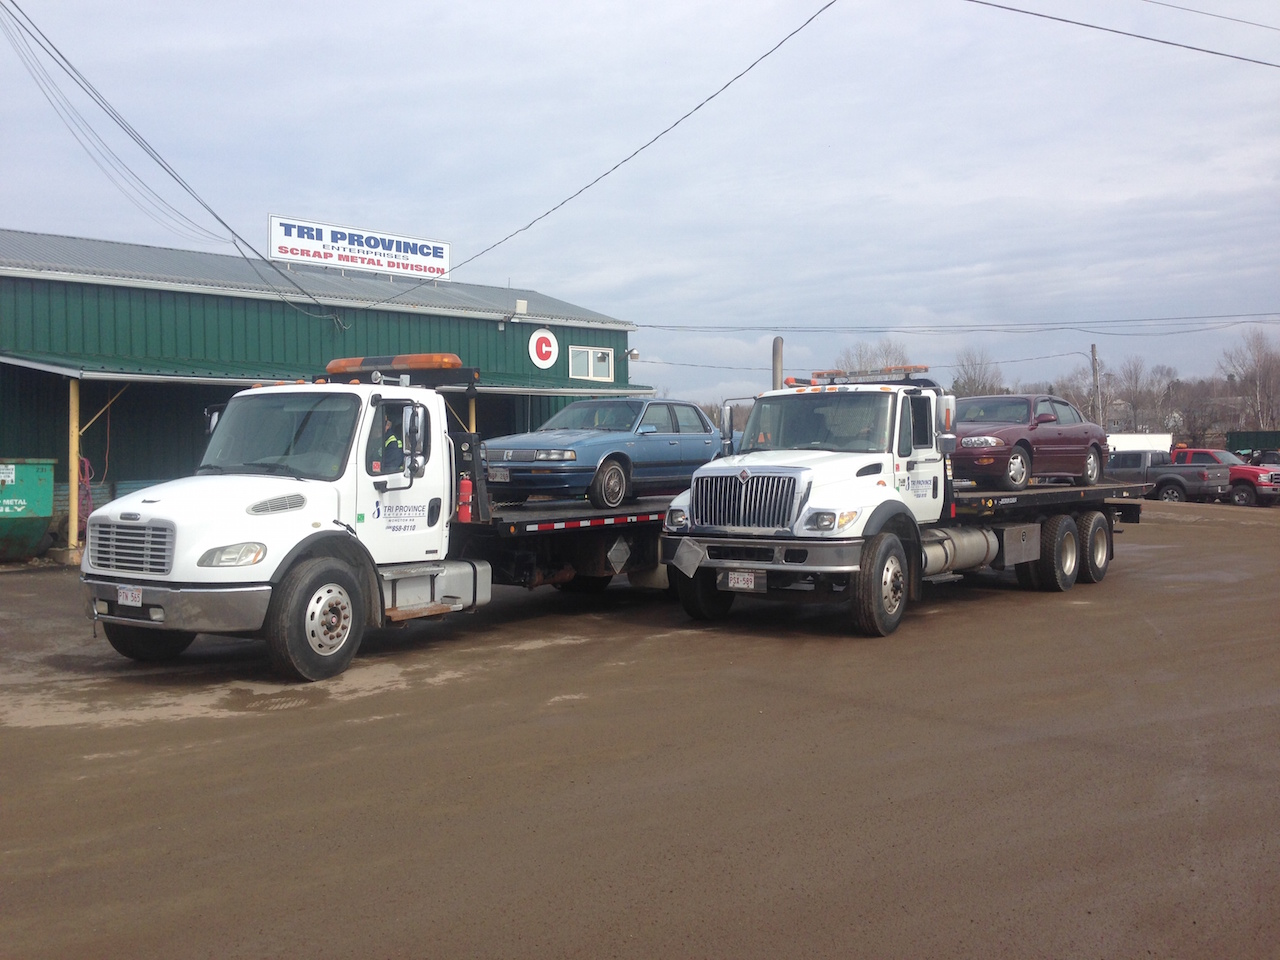 Tri Province | Scrap Metal Recycling, Structural Steel, Steel ...